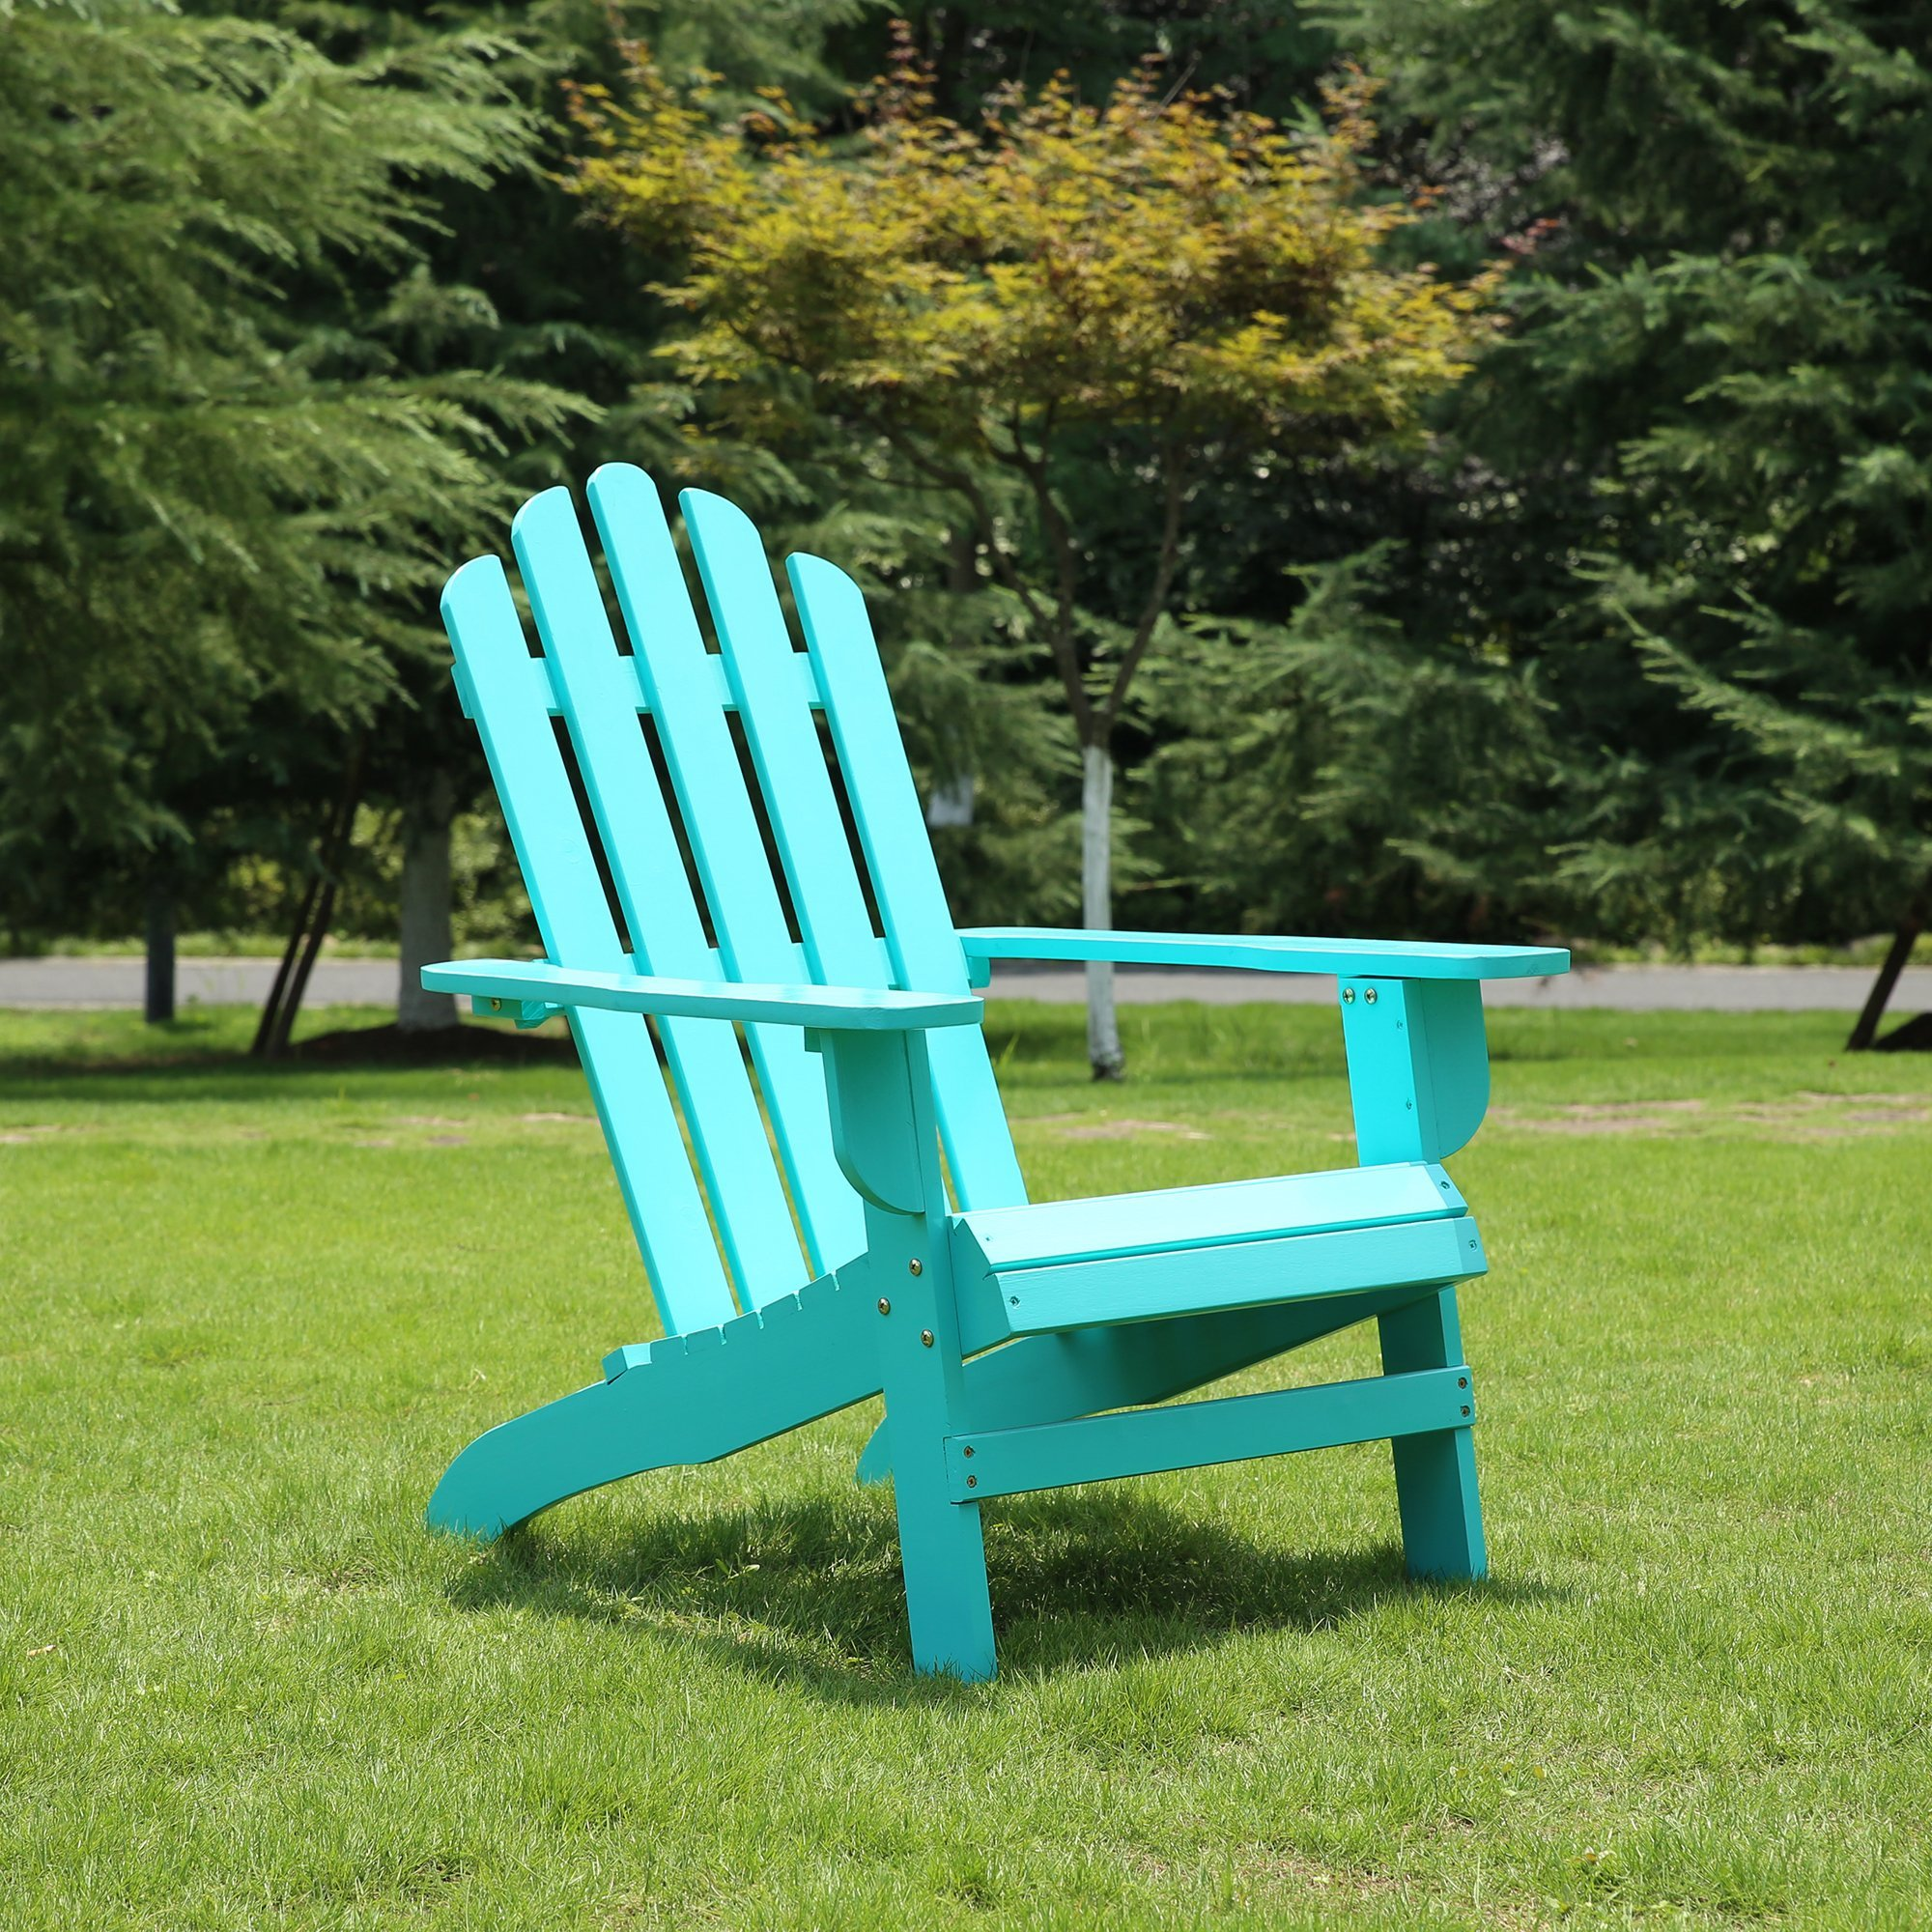 Azbro Outdoor Wooden Fashion Adirondack chair/Muskoka Chairs Patio Deck Garden Furniture,Turquoise by Azbro (Image #1)